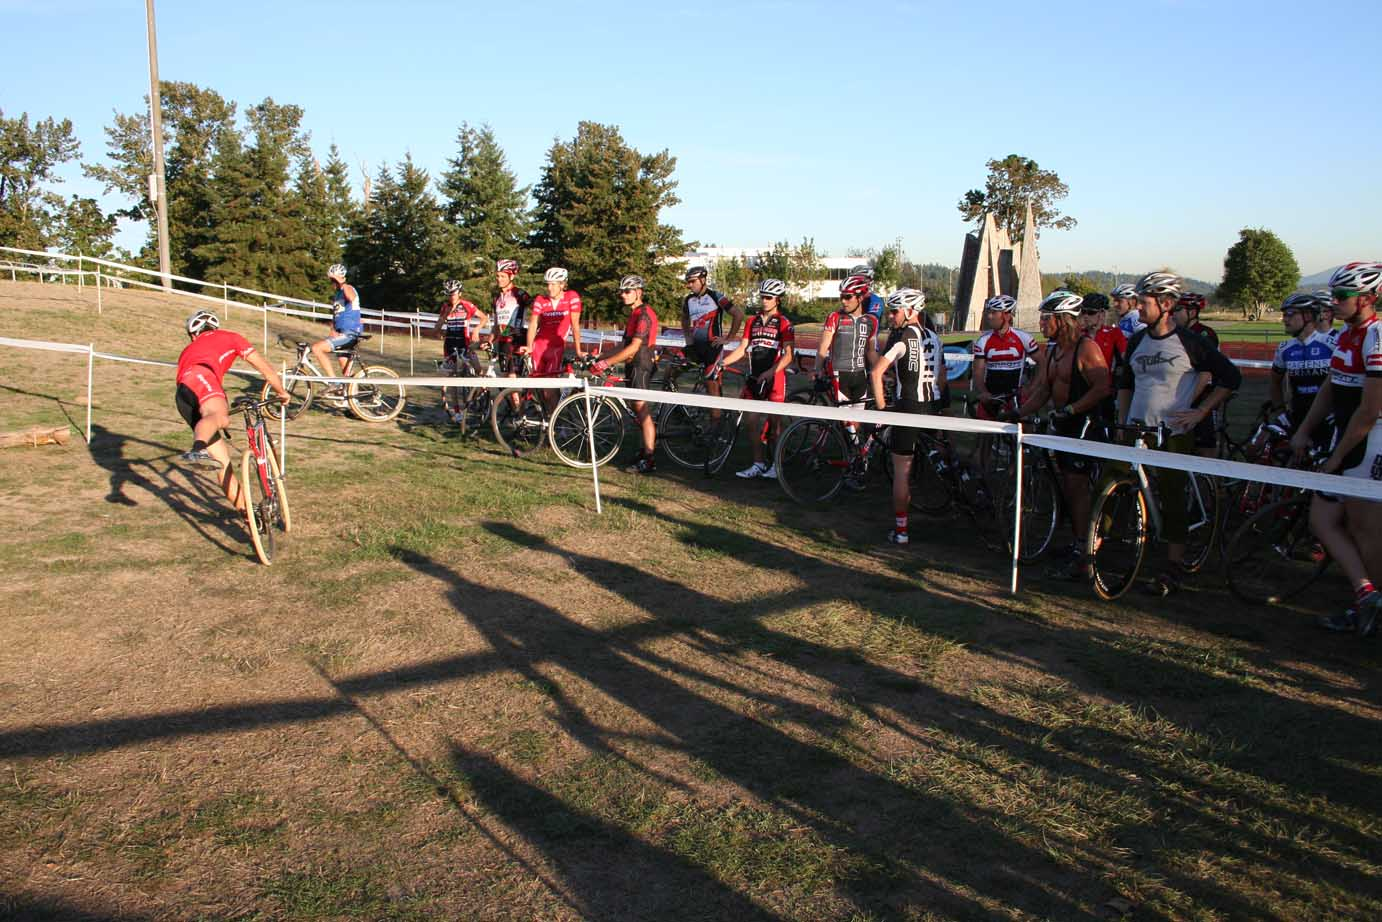 Jonathan Page shows the crowd an uphill corner dismount